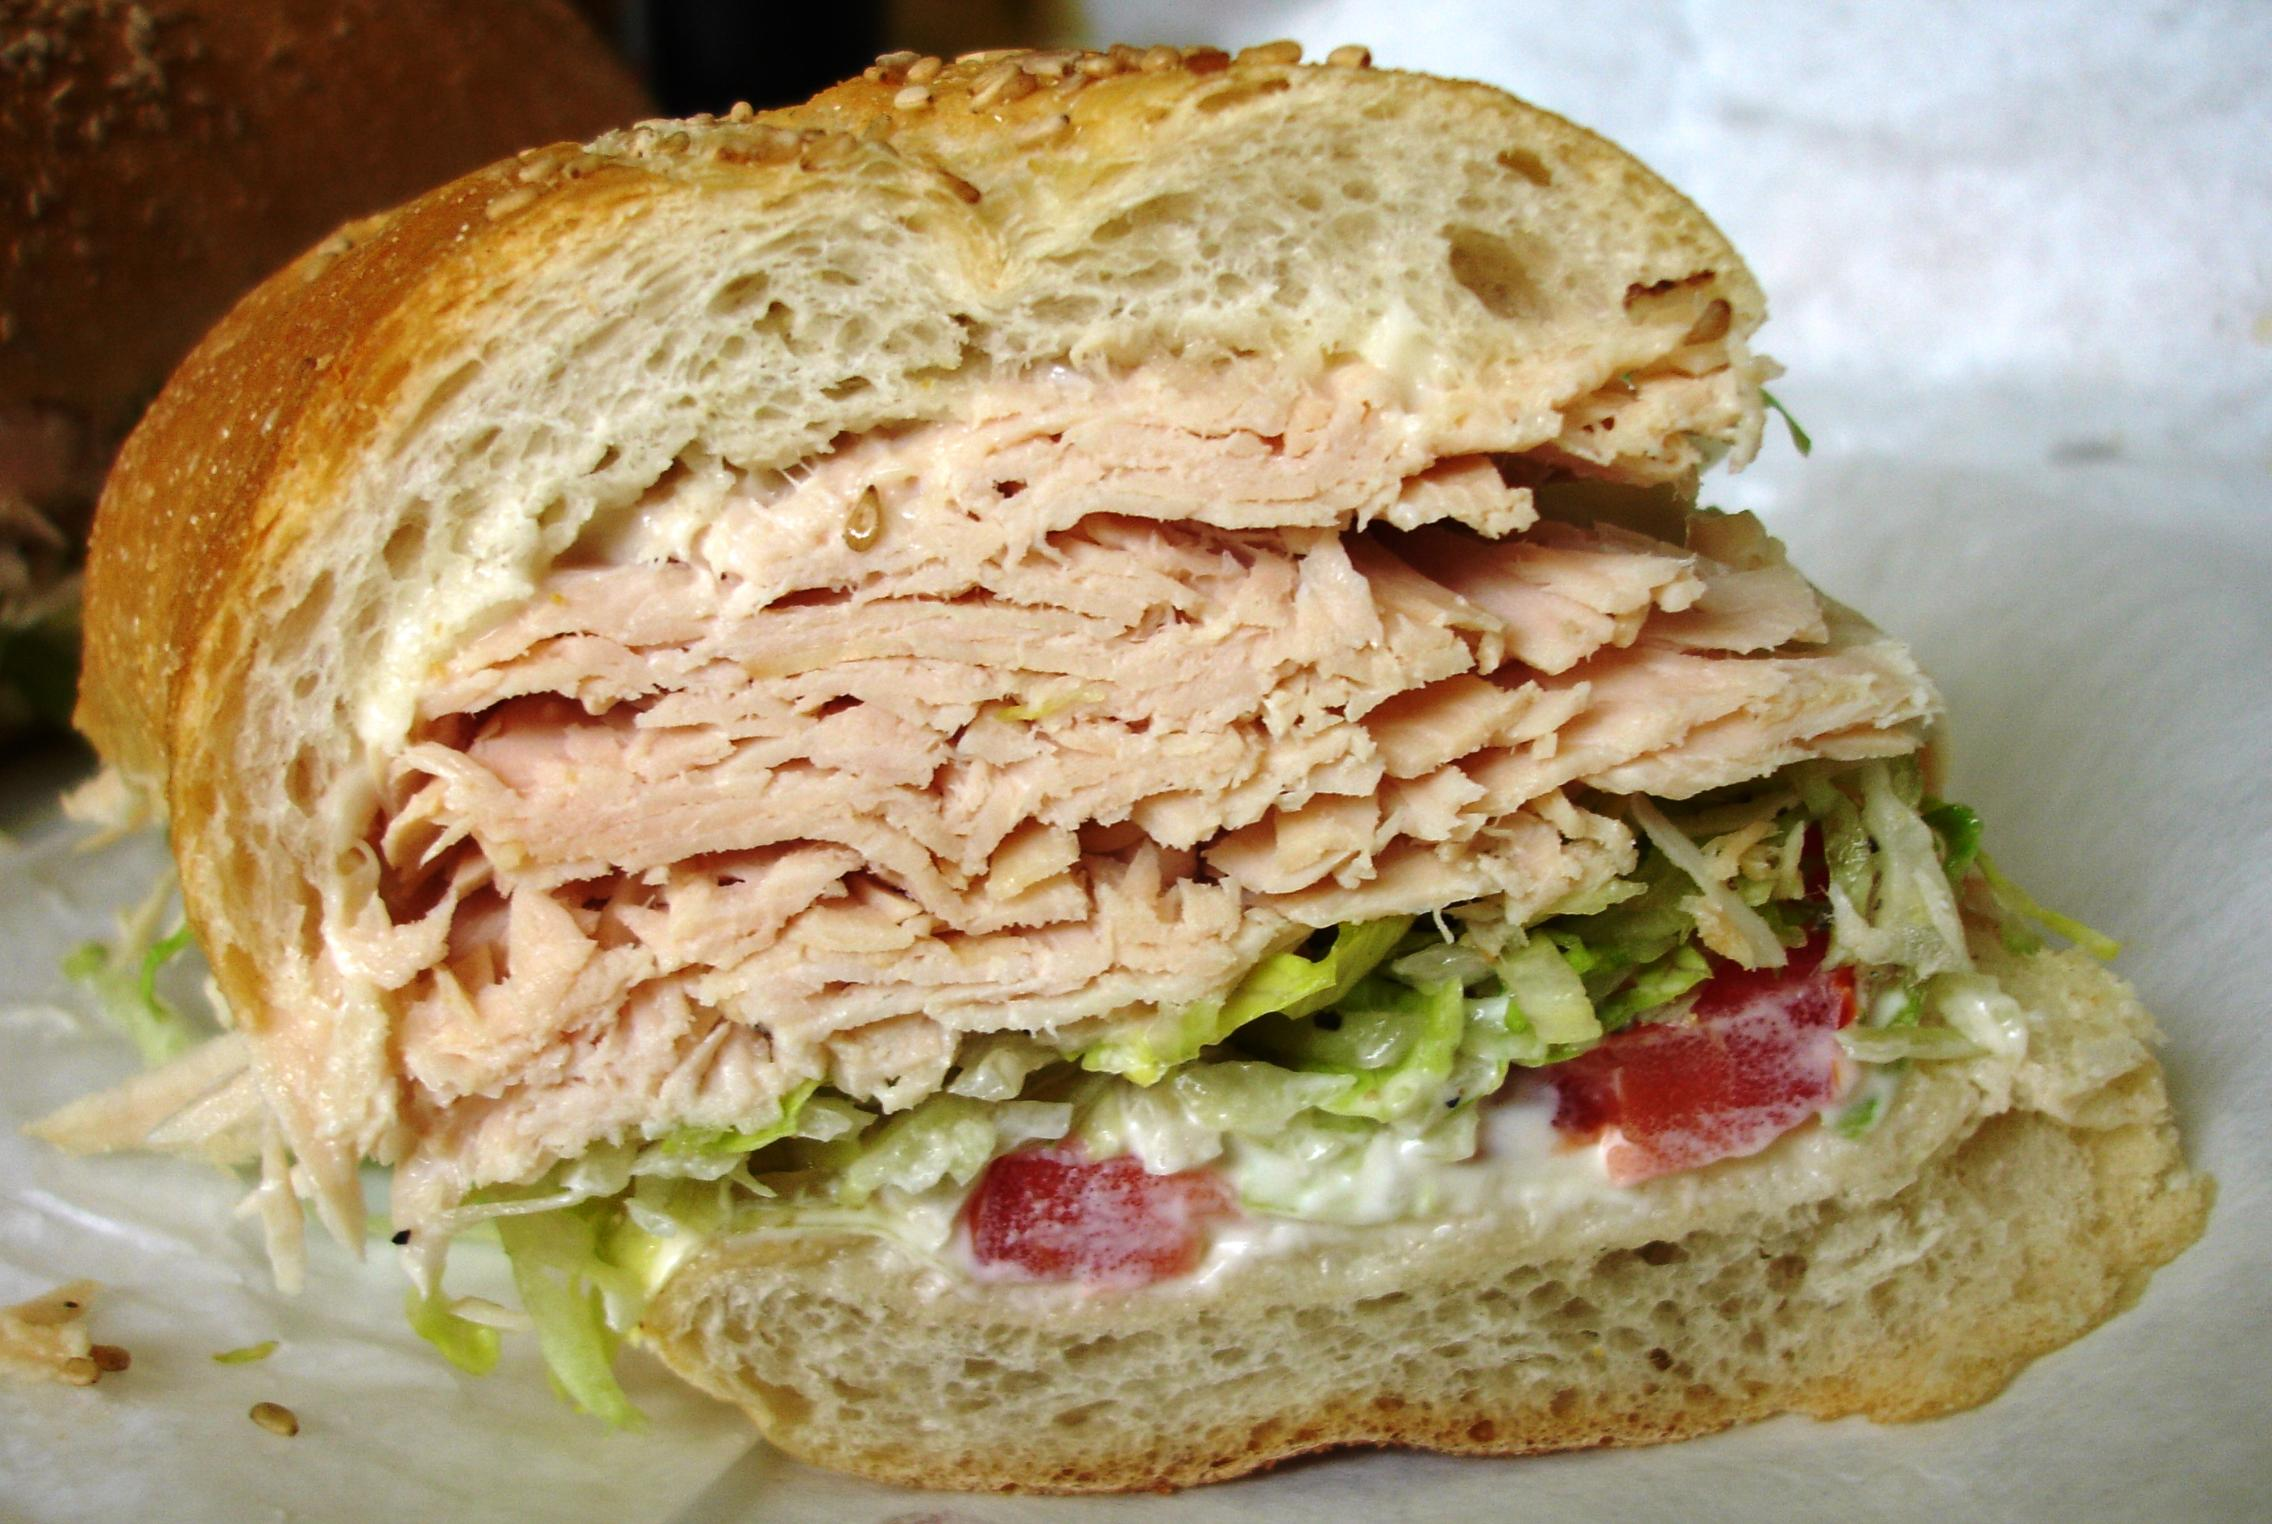 We especially love the King's turkey sandwiches. Be sure to ask for the turkey roasted in-house, not the deli turkey.